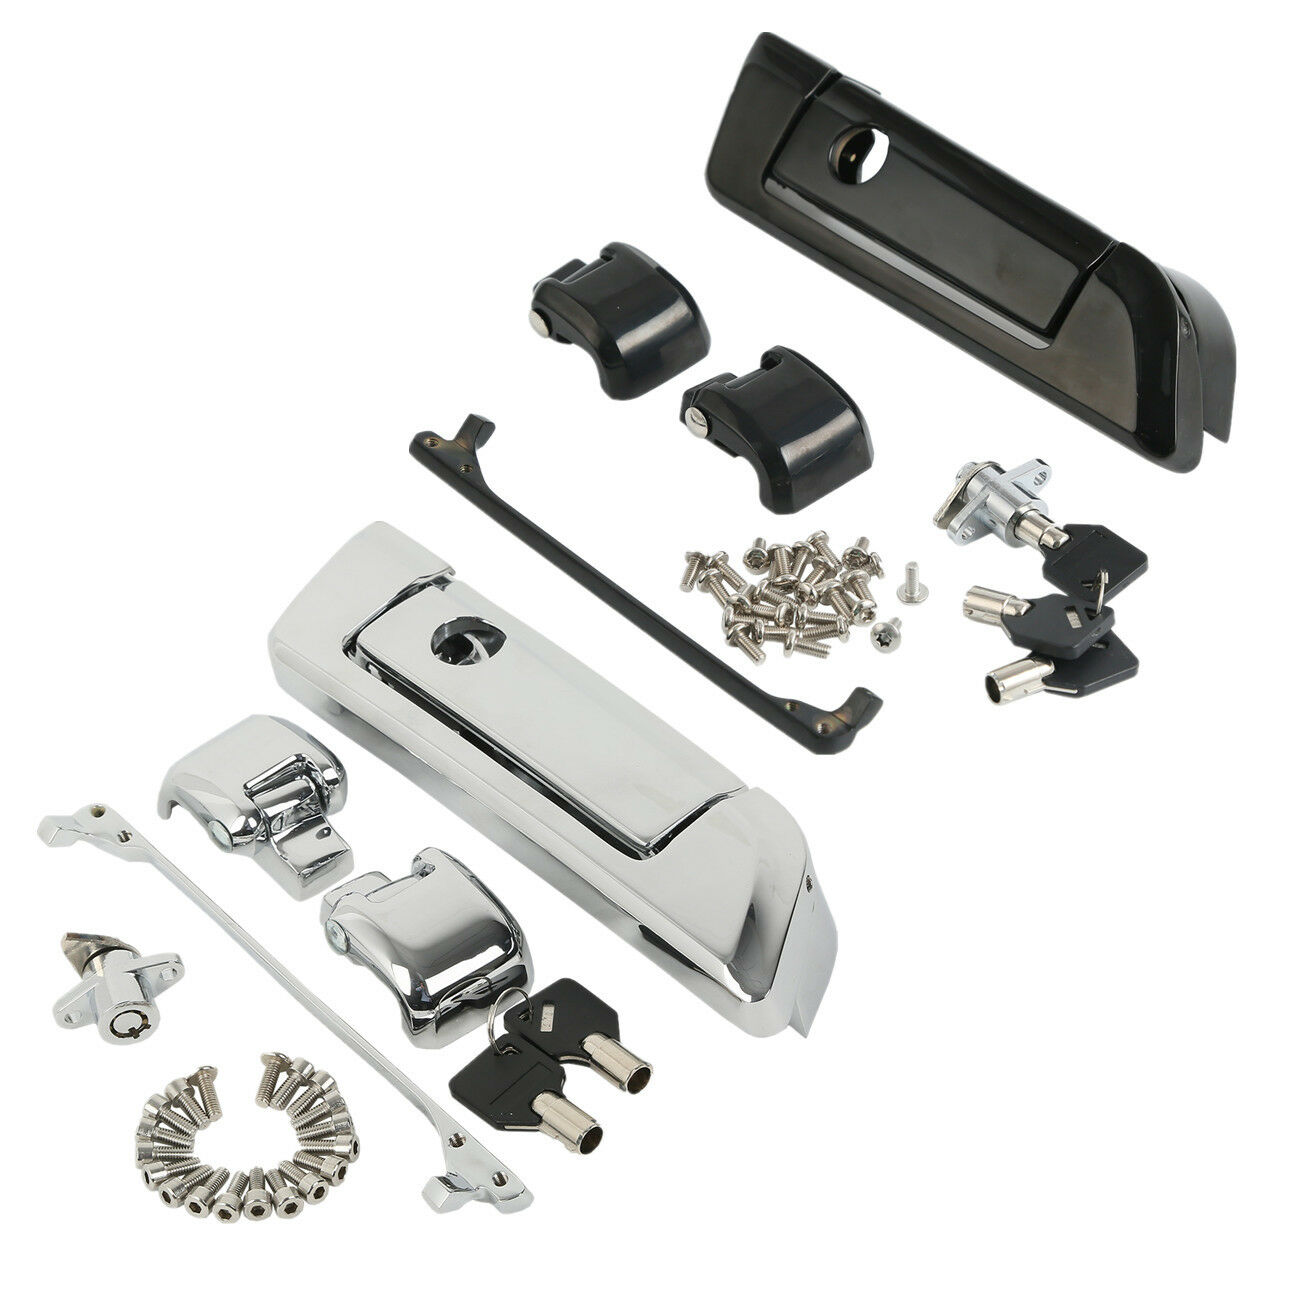 Motorcycle Tour Pak Pack Trunk Latch For Harley Touring Road King Street Glide Electra Ultra Classic